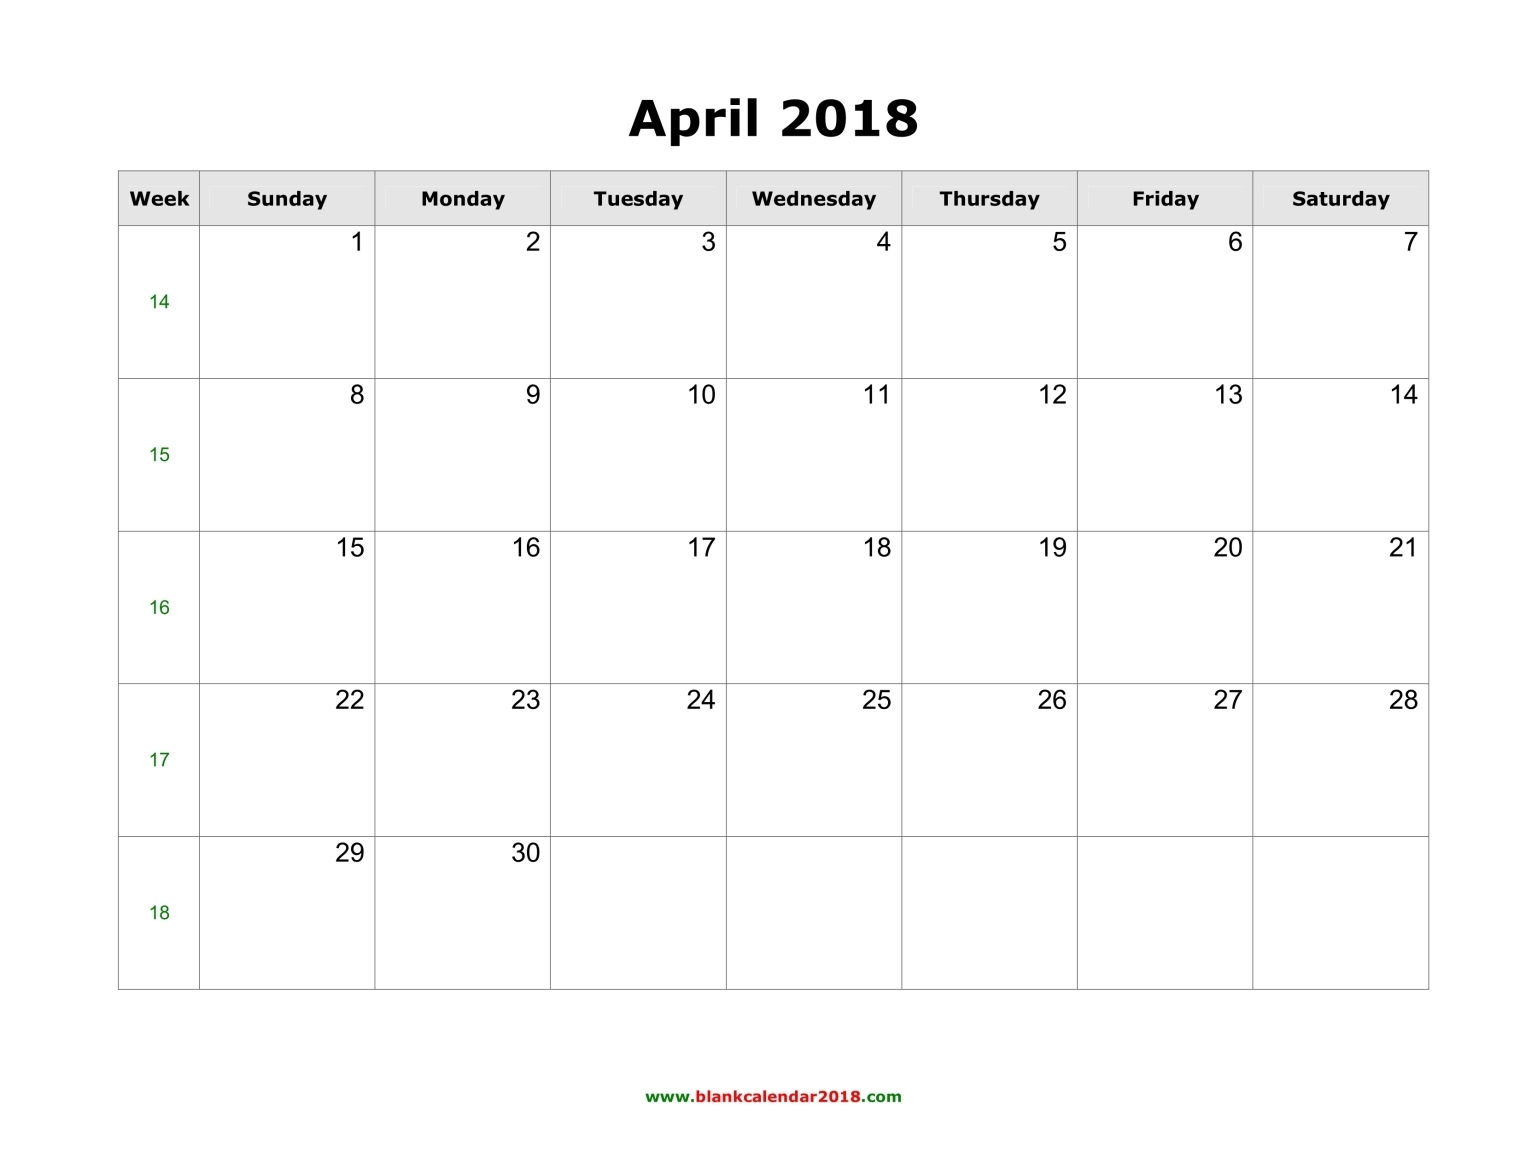 month of april 2018 calendar